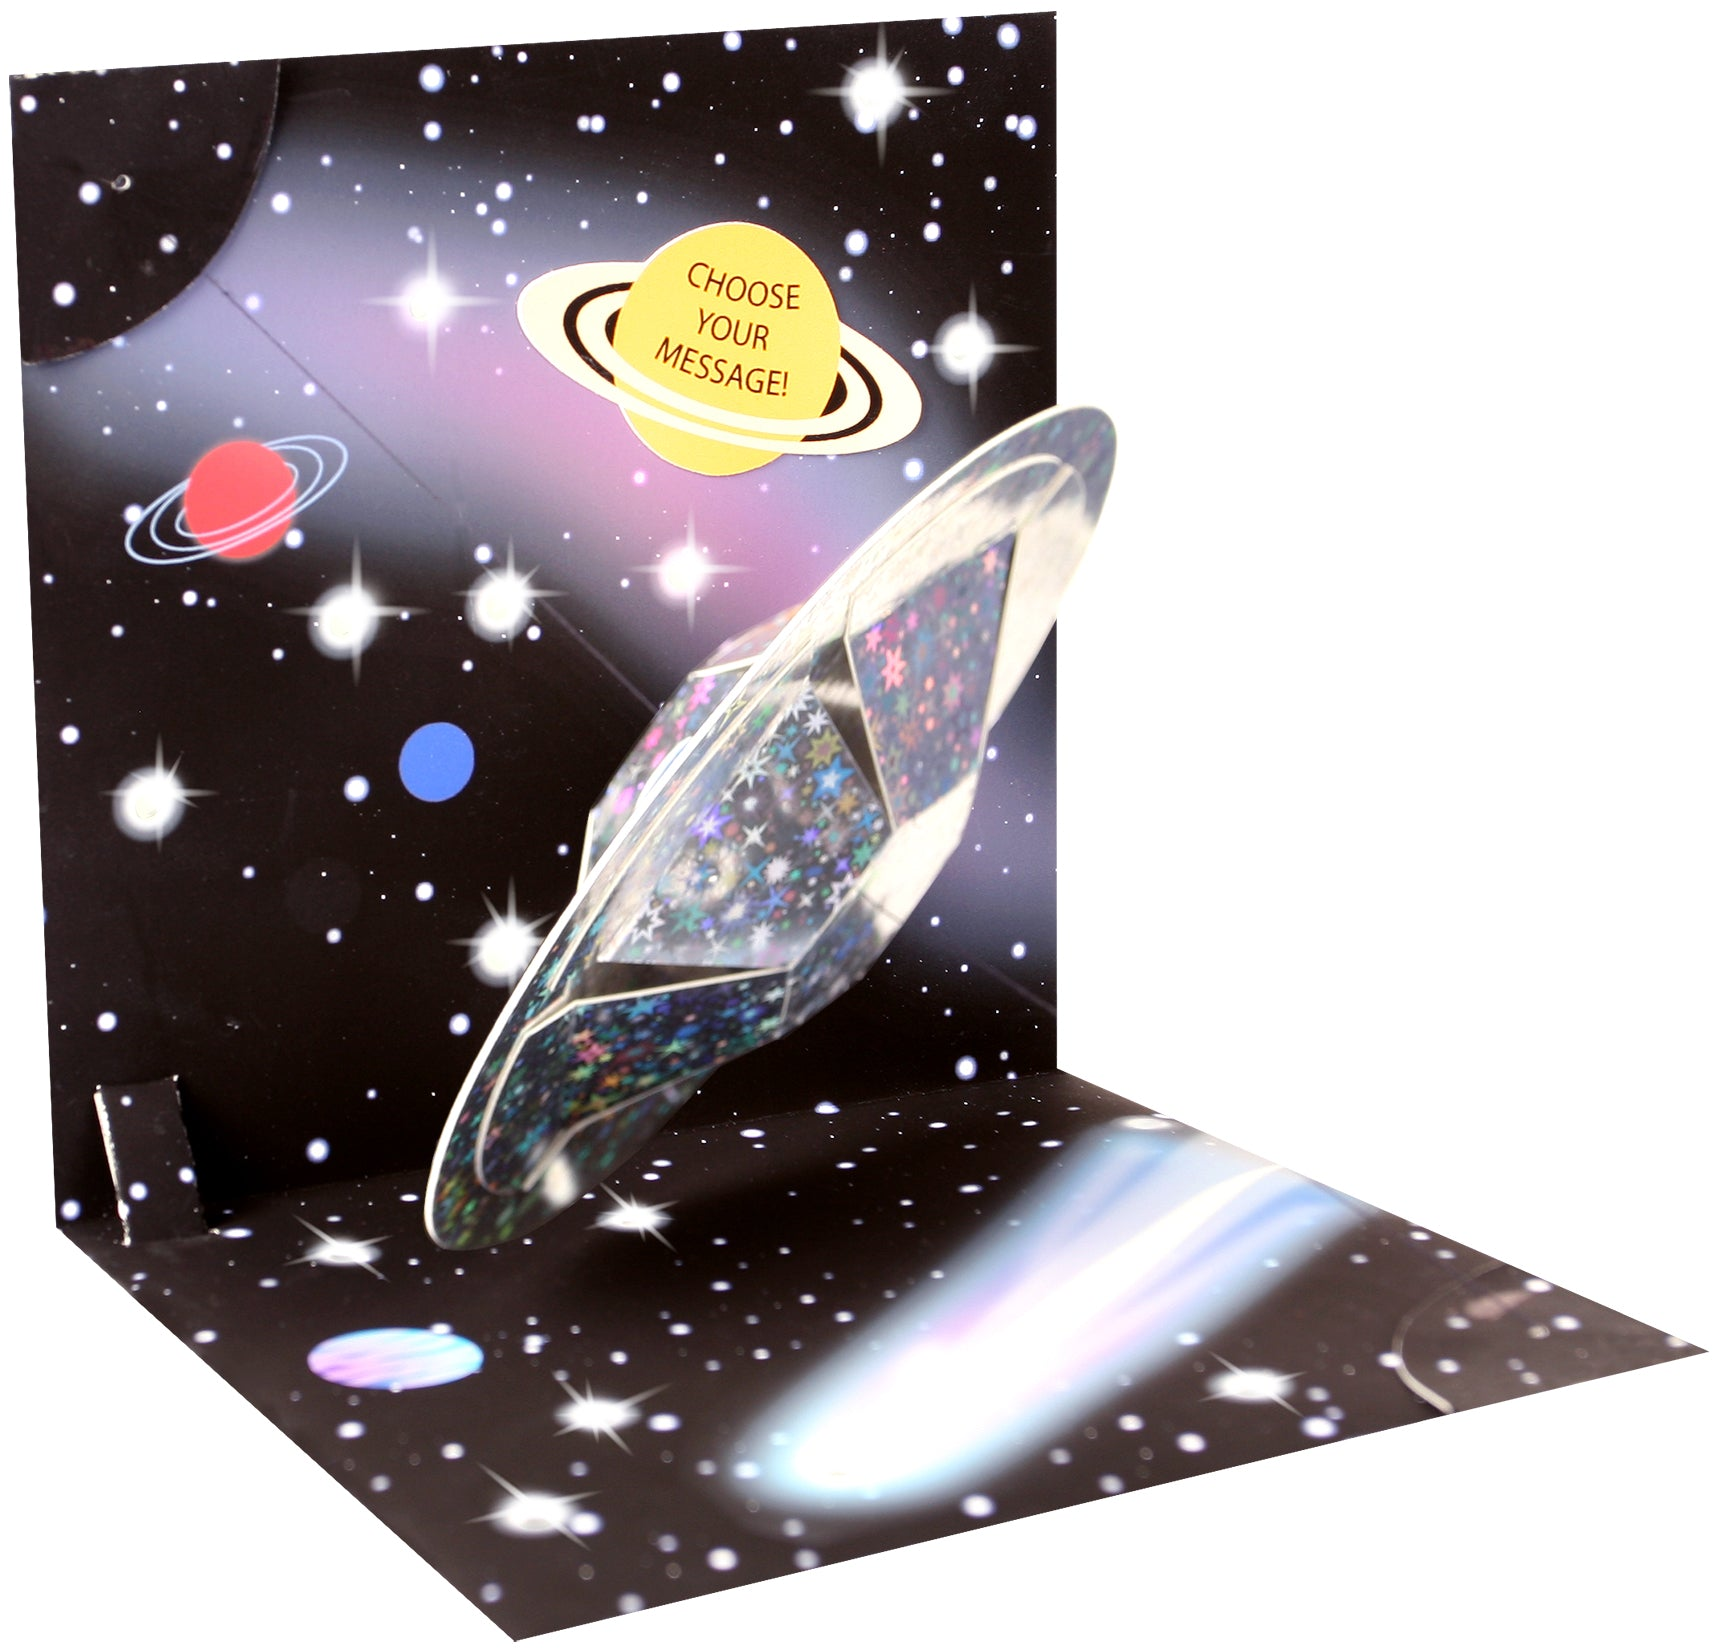 Lit Outer Space Pop-Up Card - Heart of the Home PA